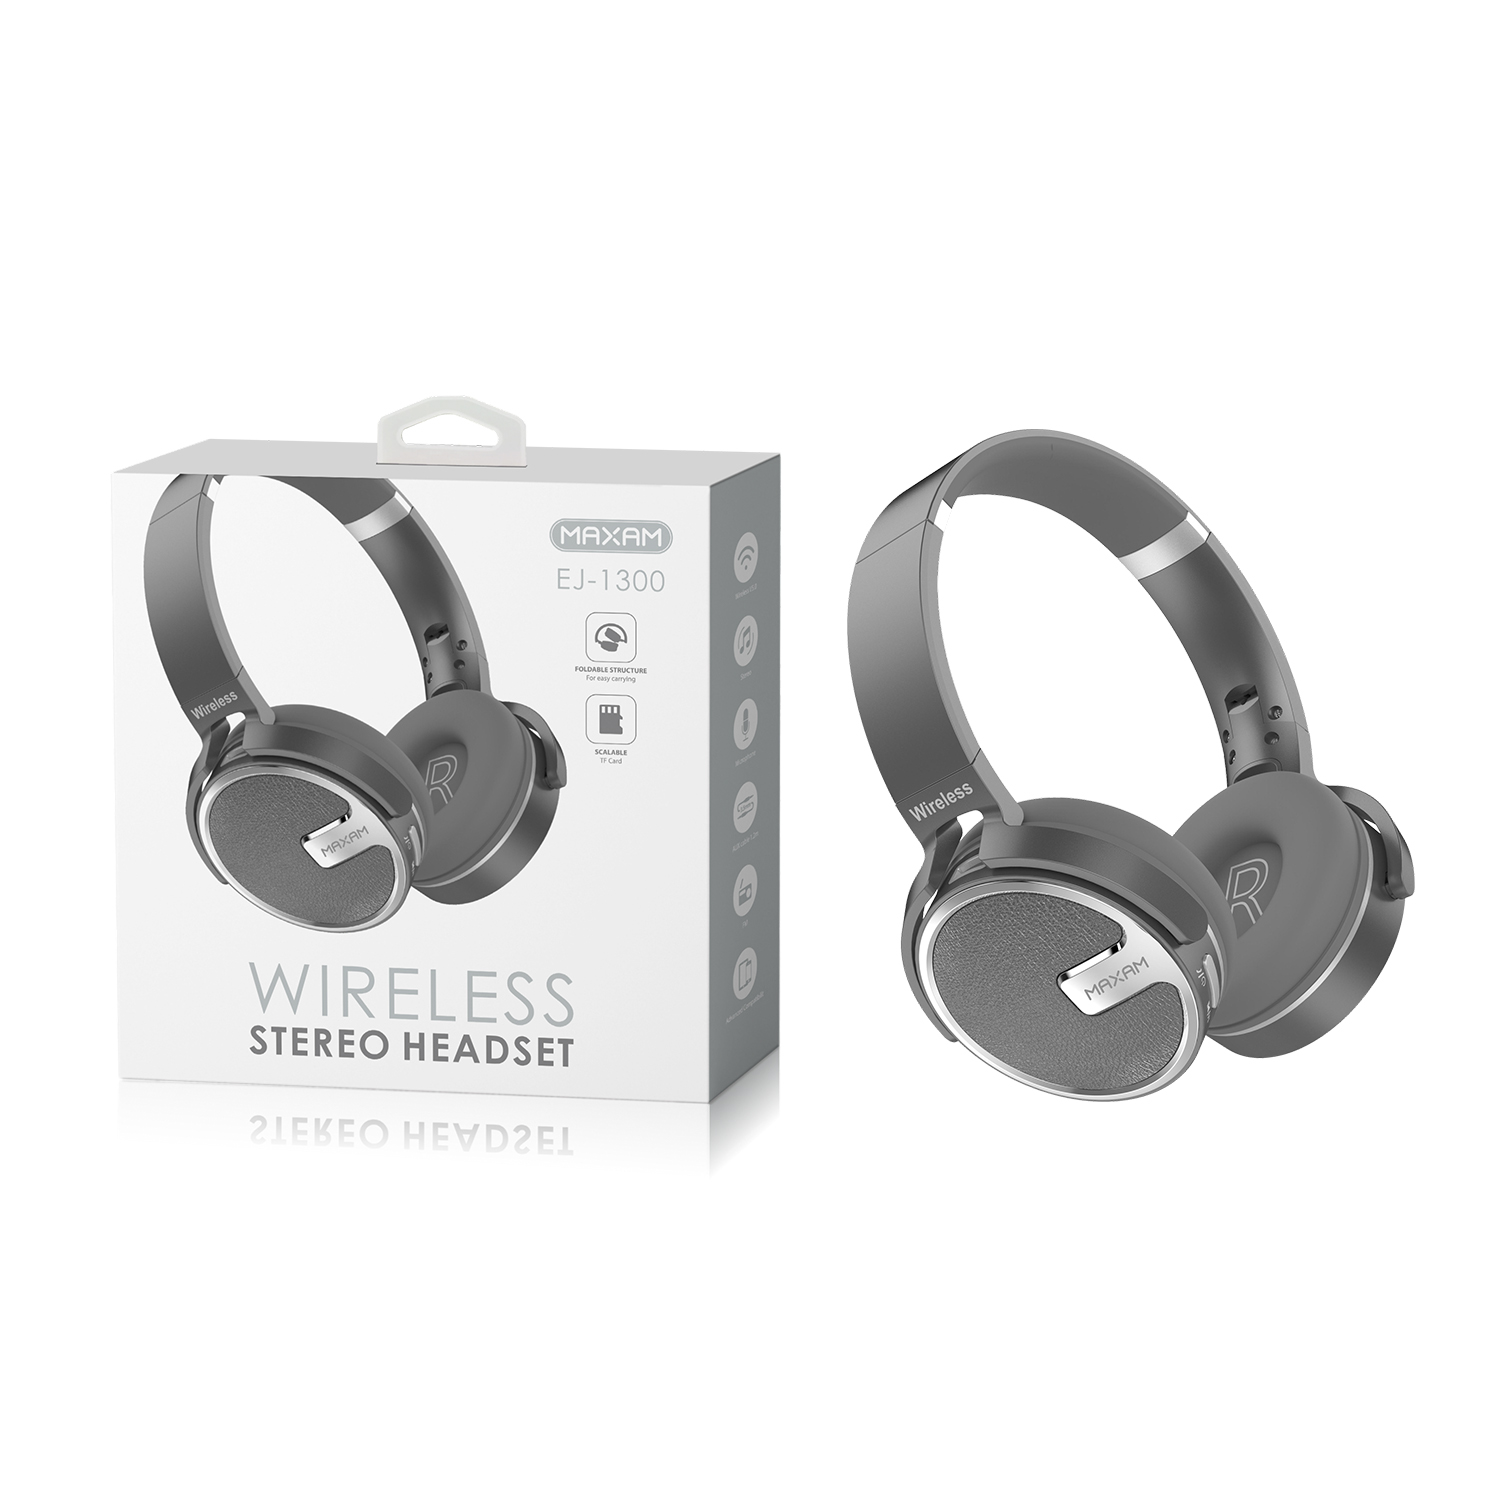 EJ-1300Black Wireless stereo